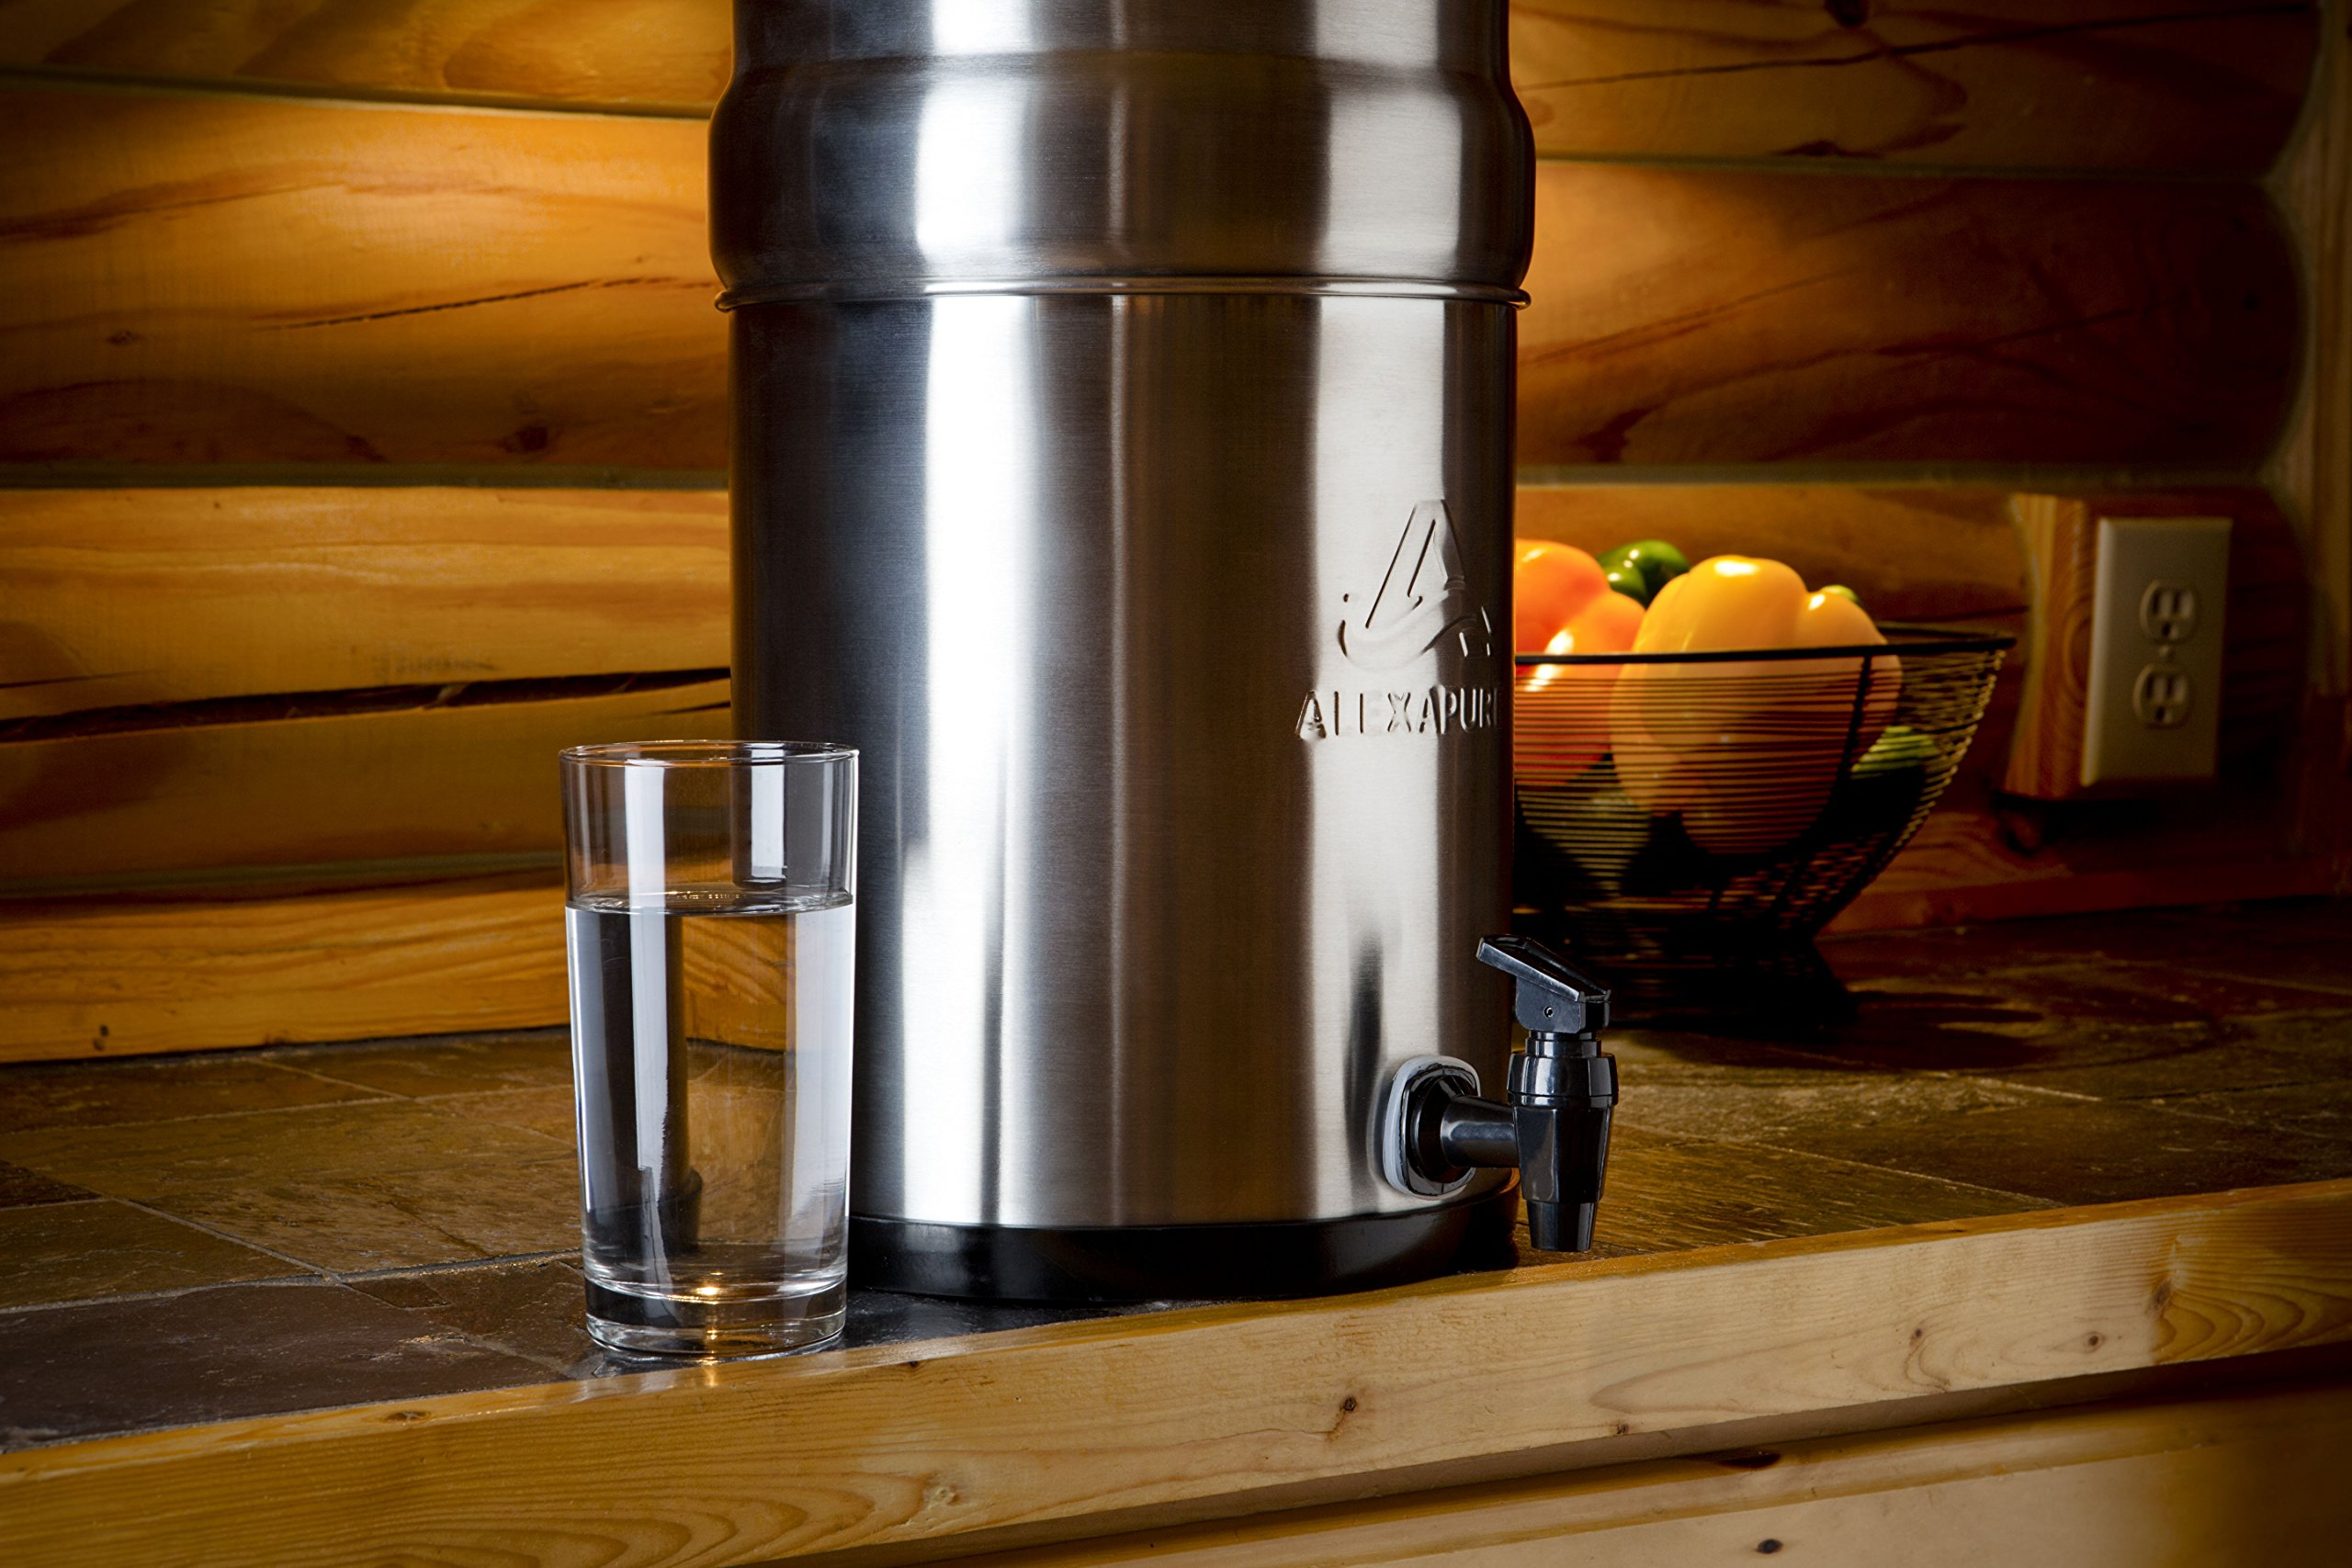 Alexapure Pro Stainless Steel Water Filtration System - 5,000 Gallon Throughput Capacity by Alexapure (Image #7)